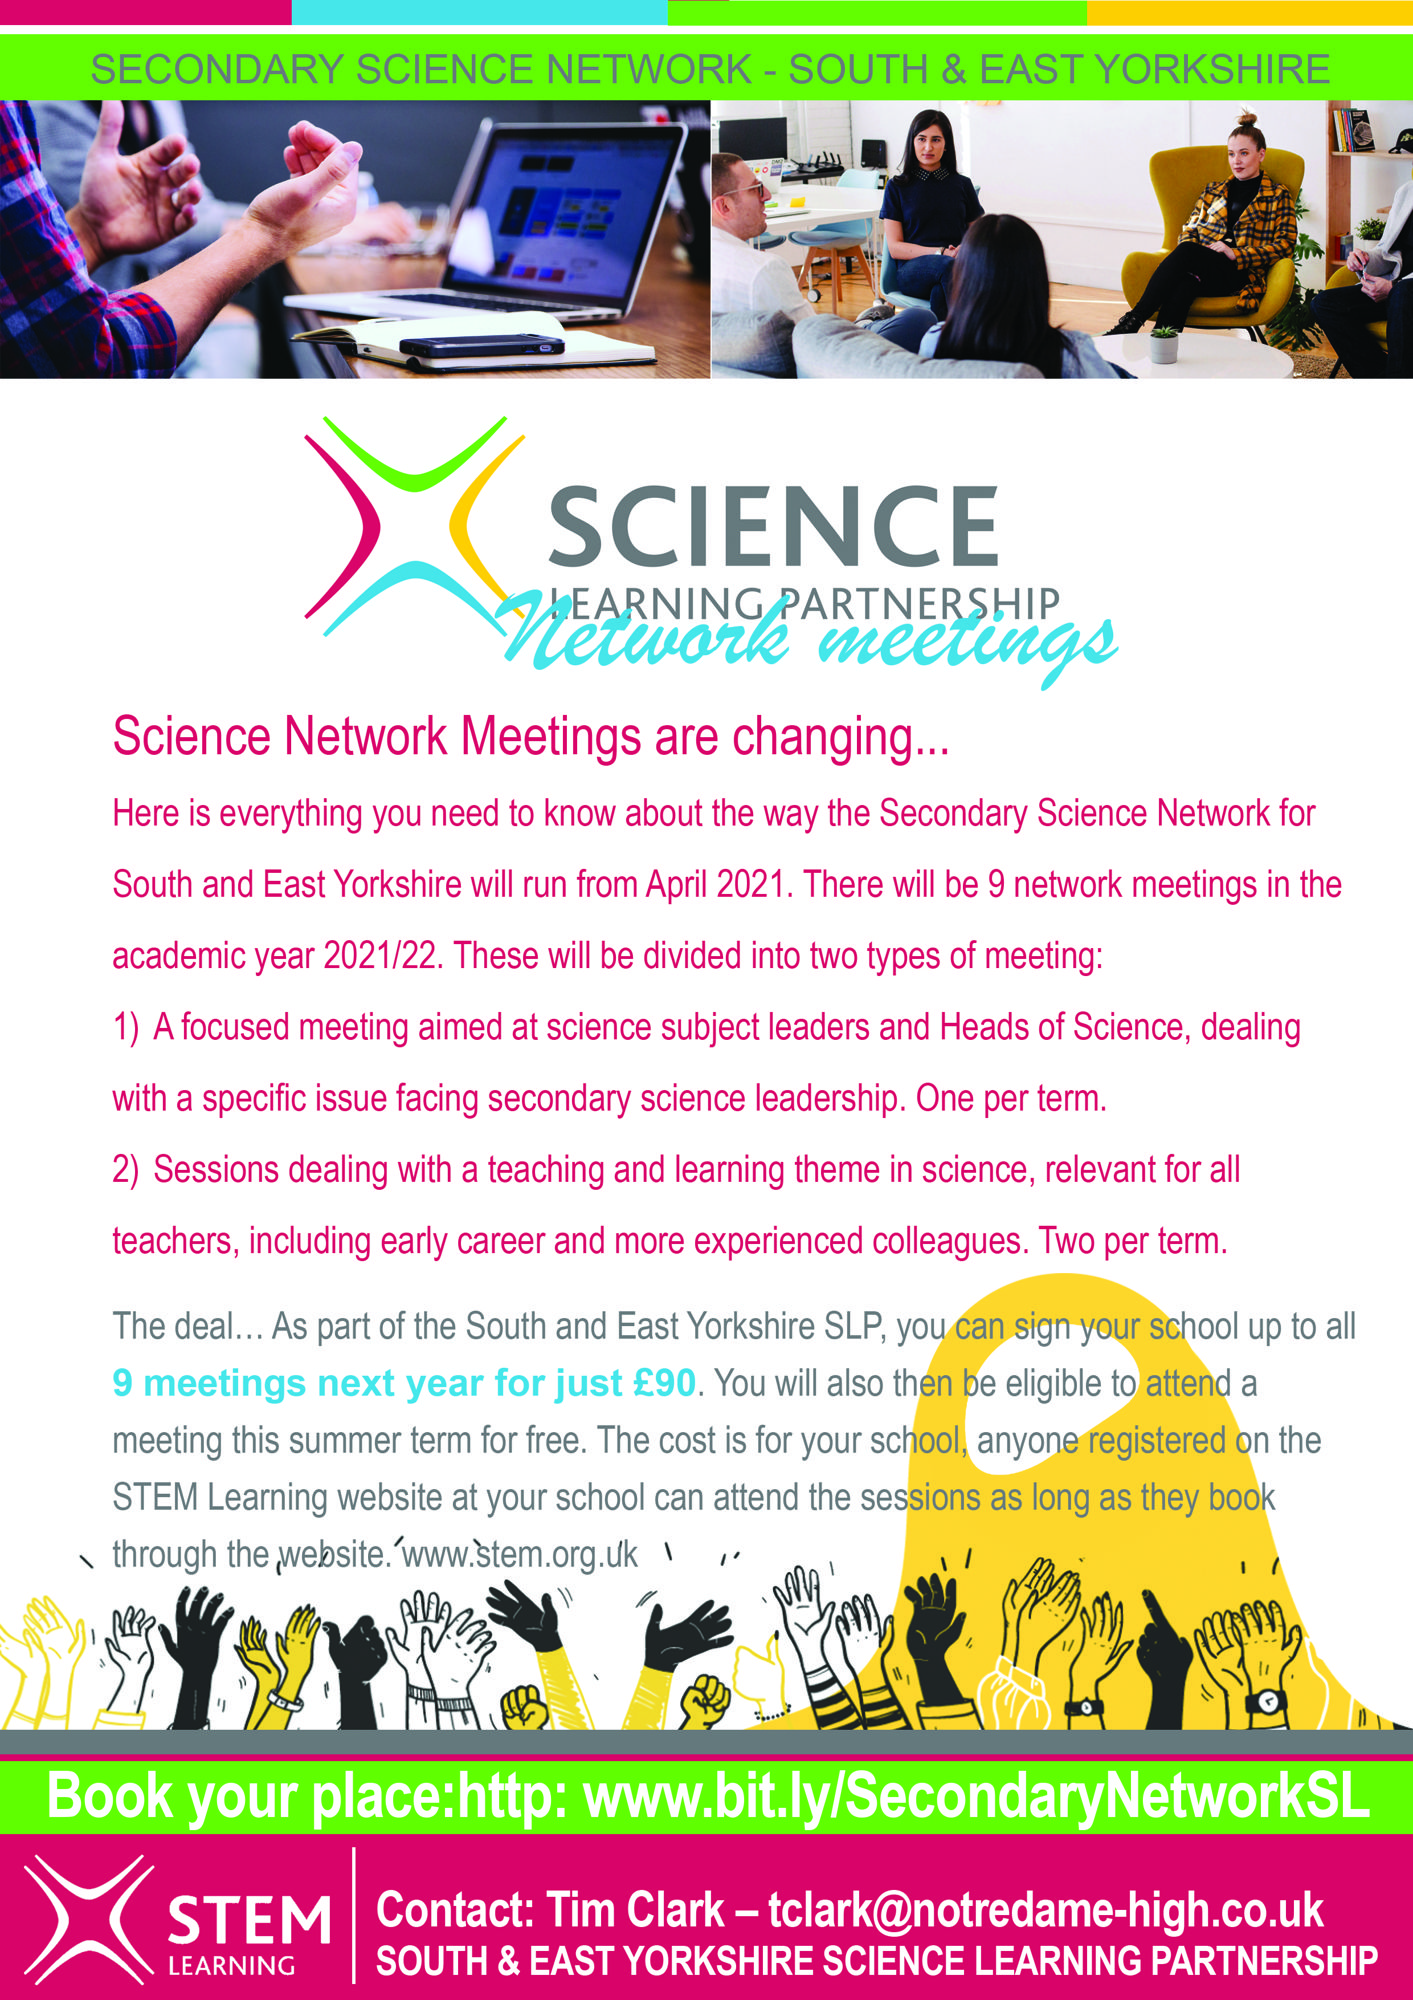 Secondary Science network offer